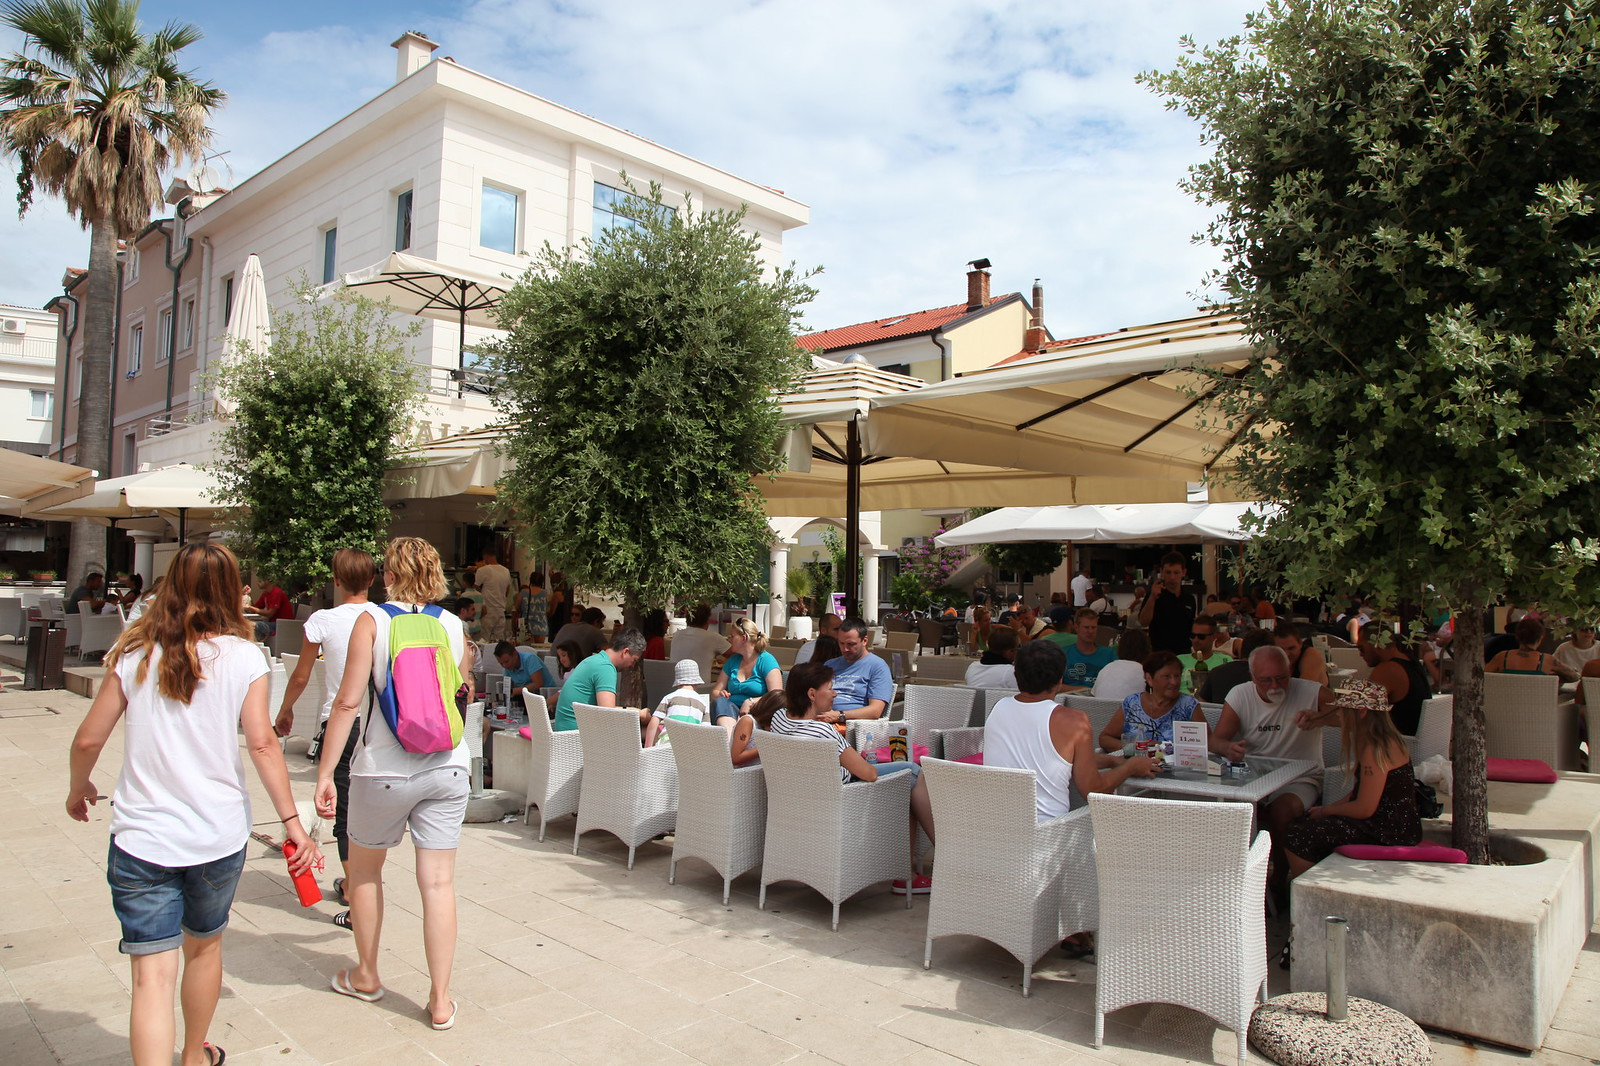 novalja city center pag island croatia town market plaza place terrace cafe tourists summer holiday vacation 2015 august